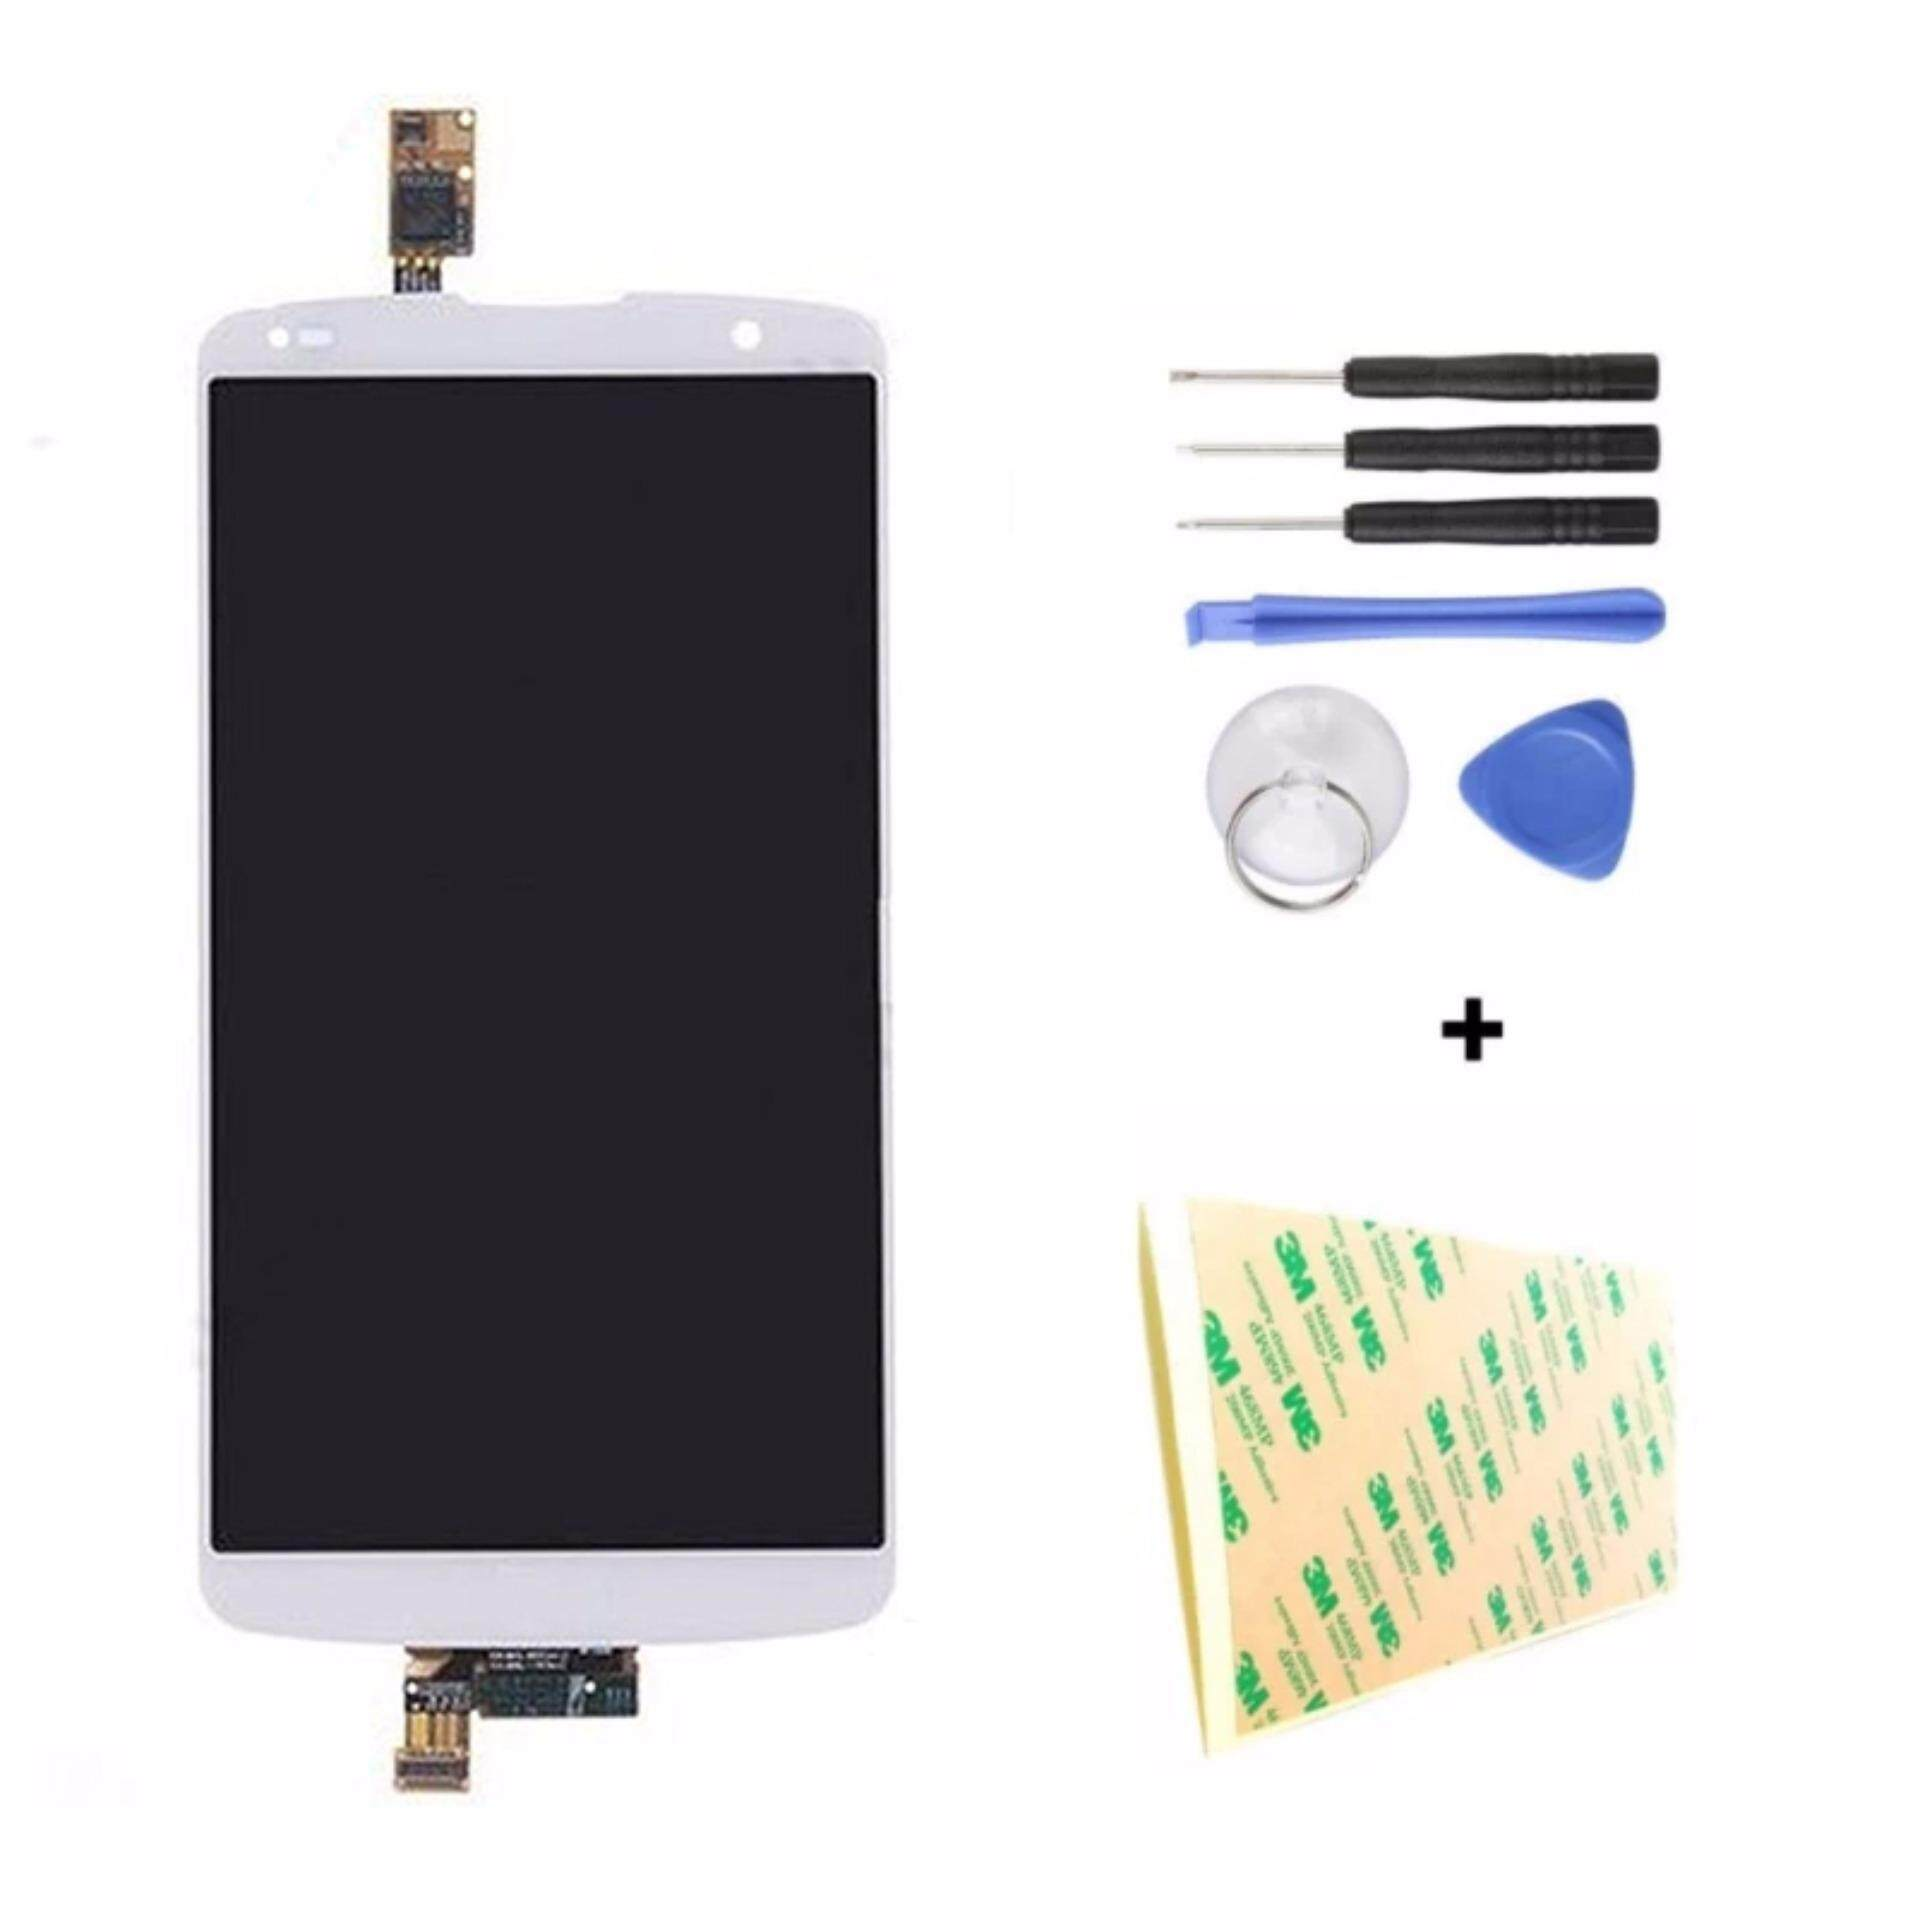 For LG Optimus G Pro 2 F350 D837 D838 LCD Display Touch Screen Digitizer assembly Replacement - intl